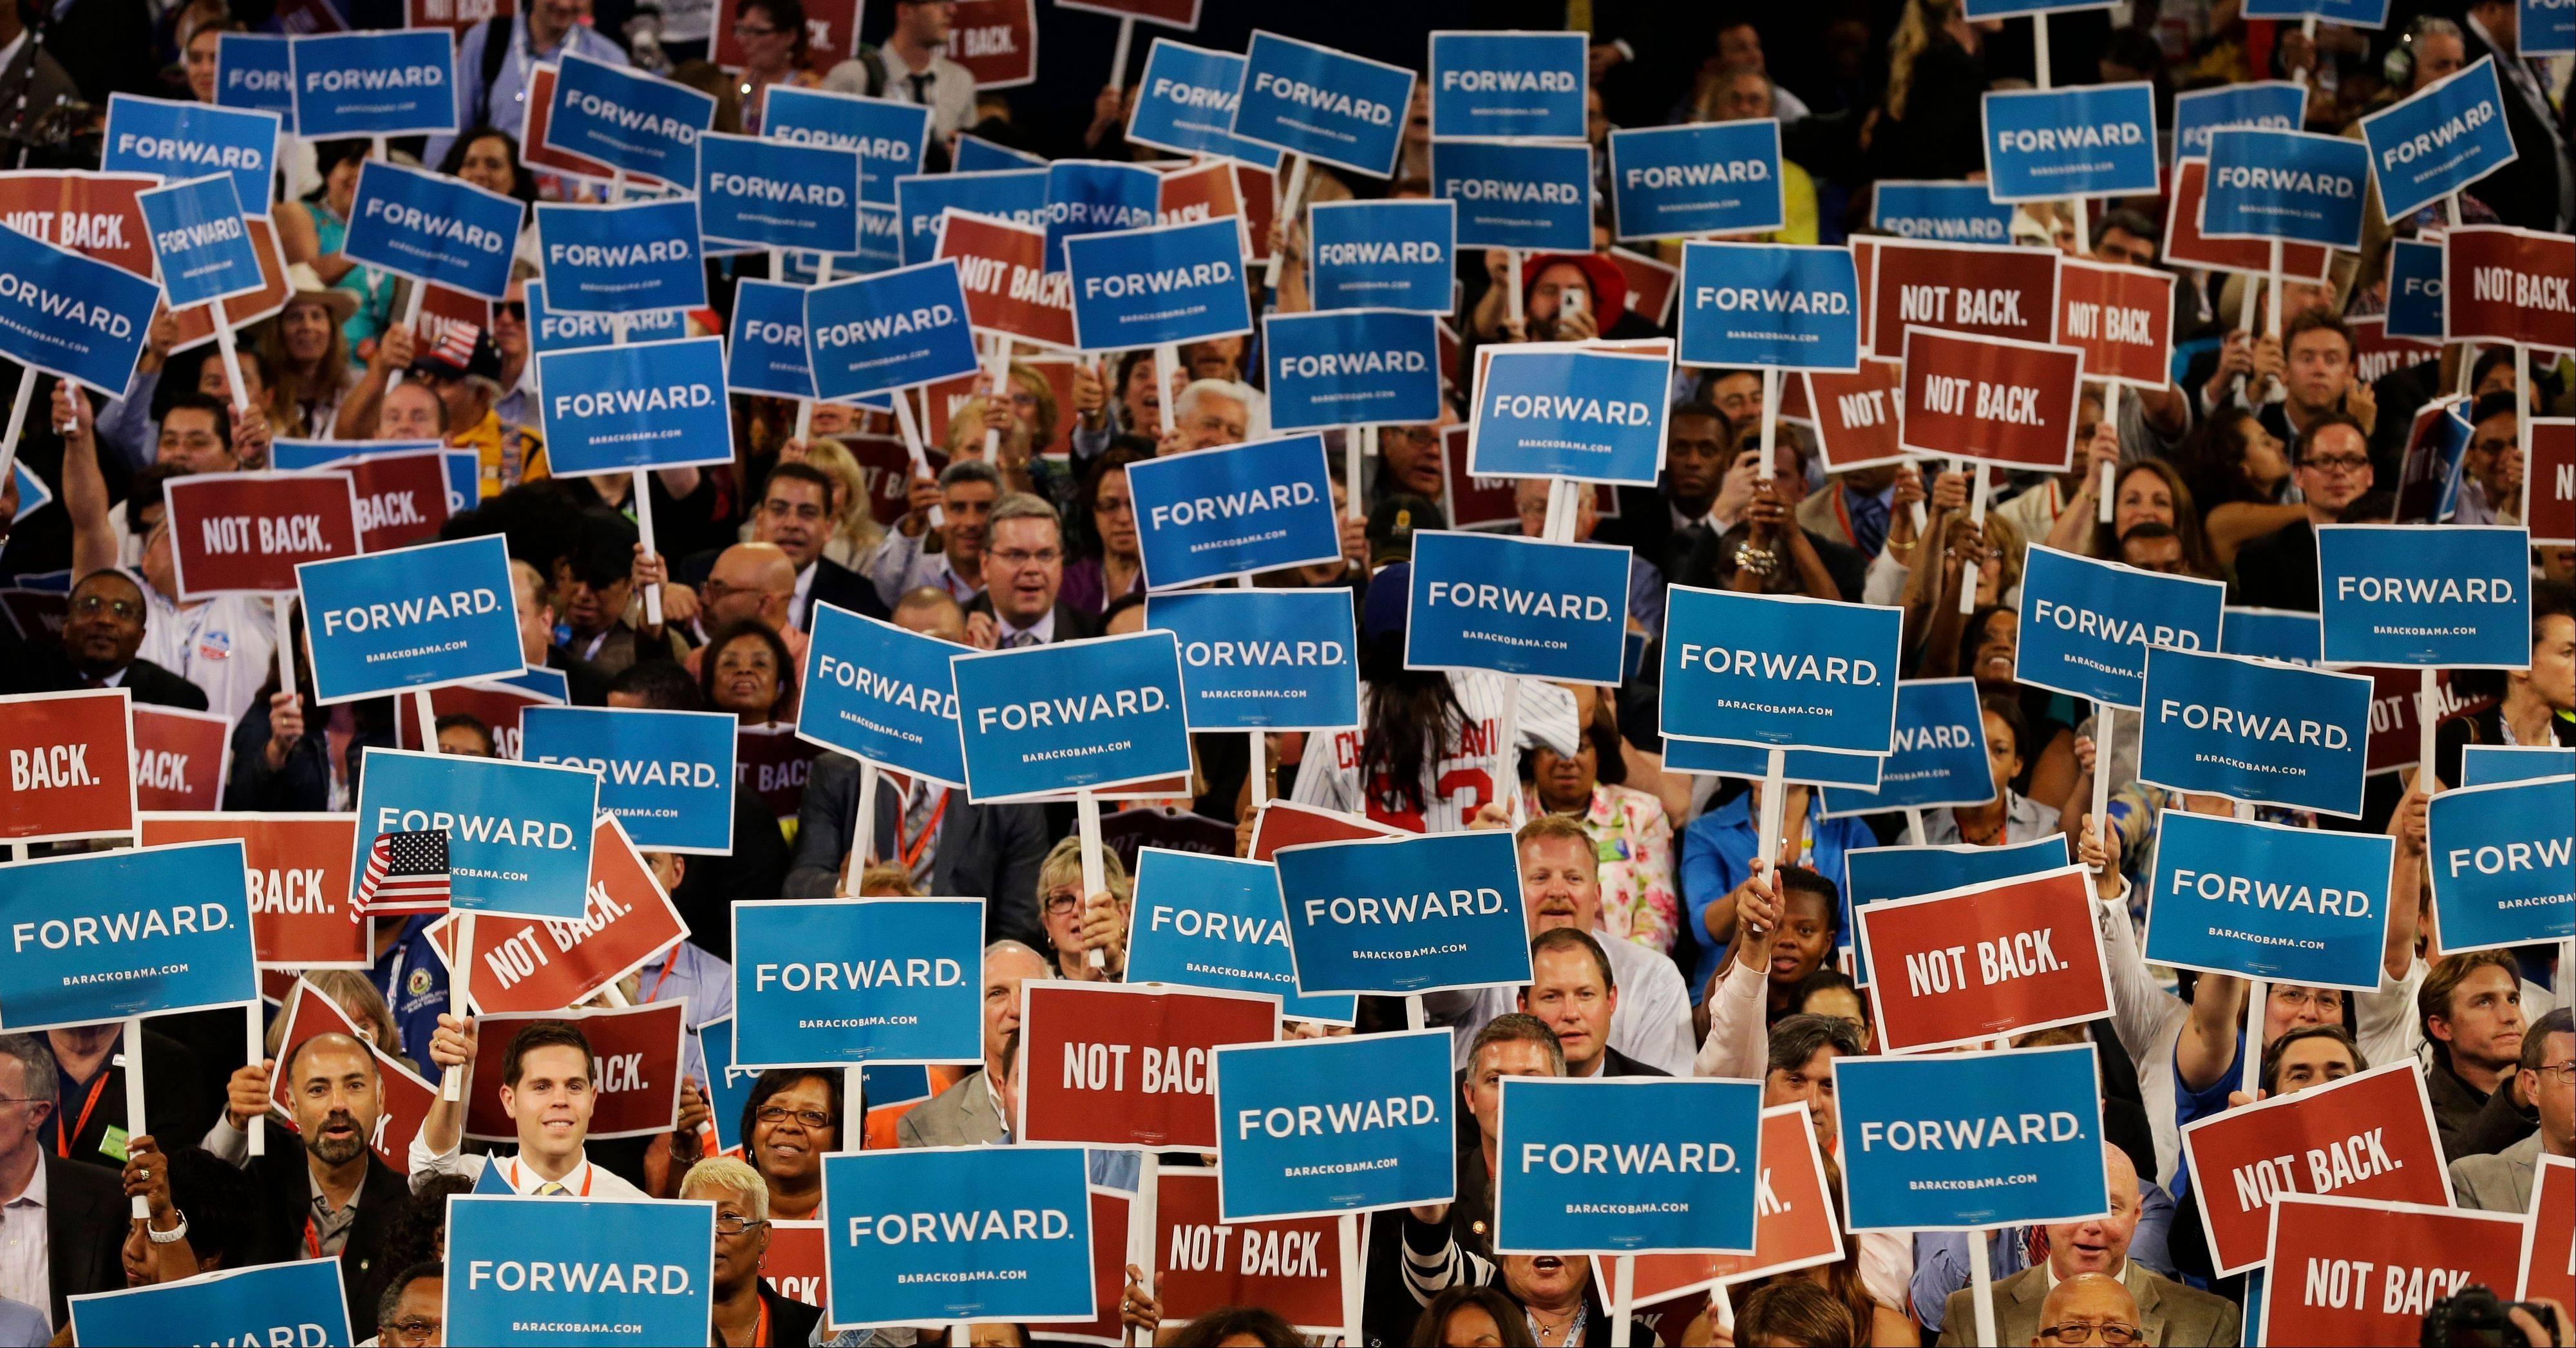 The Democratic National Convention floor might be exciting, but it�s not all that comfortable for delegates, who have to deal with crowding, seat stealing and security.